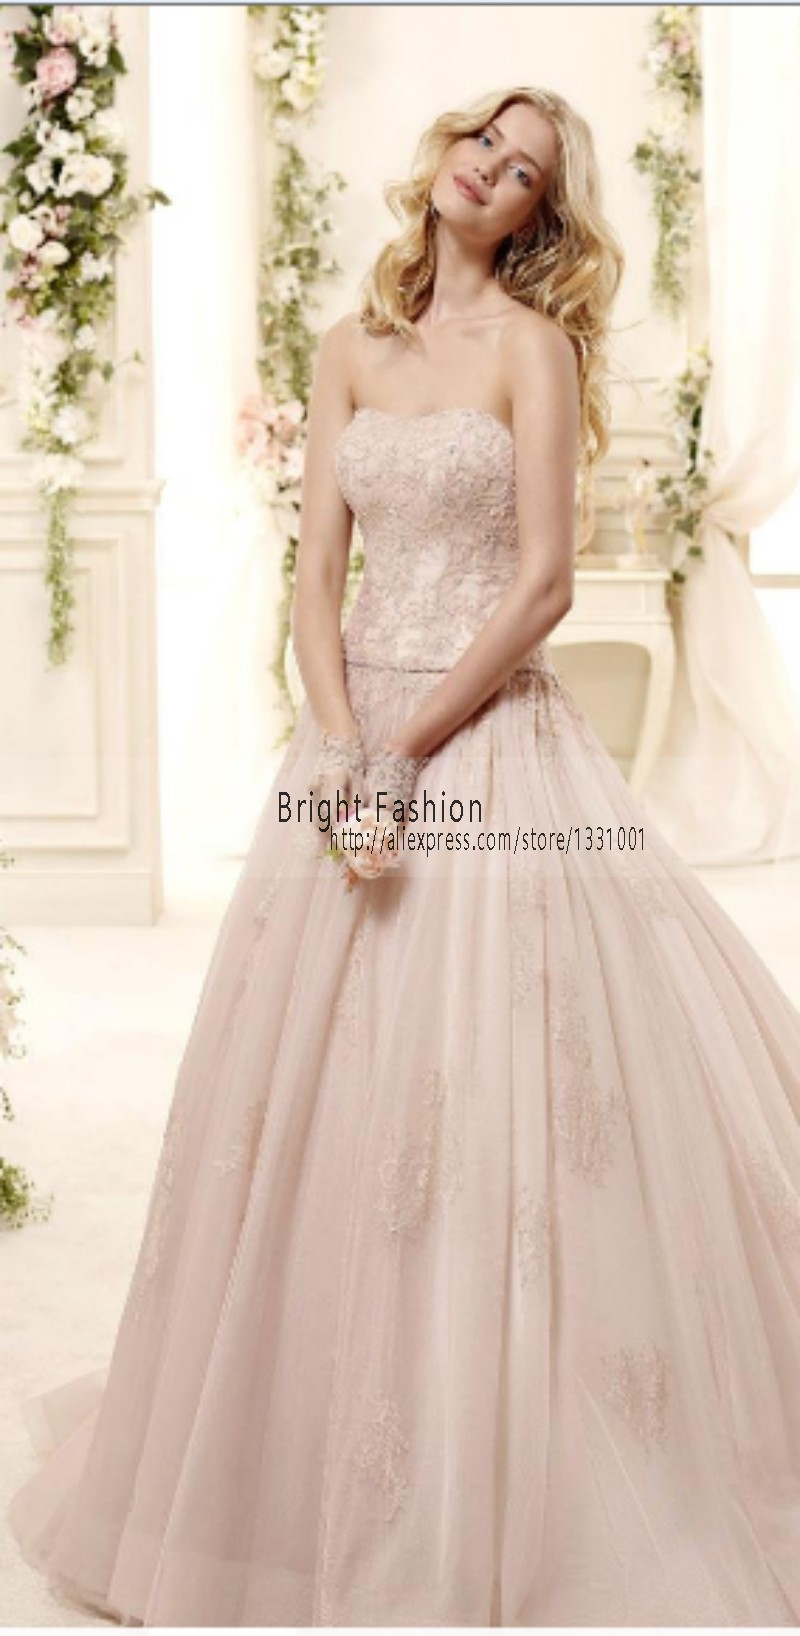 list detail lace hippie wedding dresses express wedding dresses Online Get Cheap Hippie Wedding Gown Aliexpress com Alibaba Group